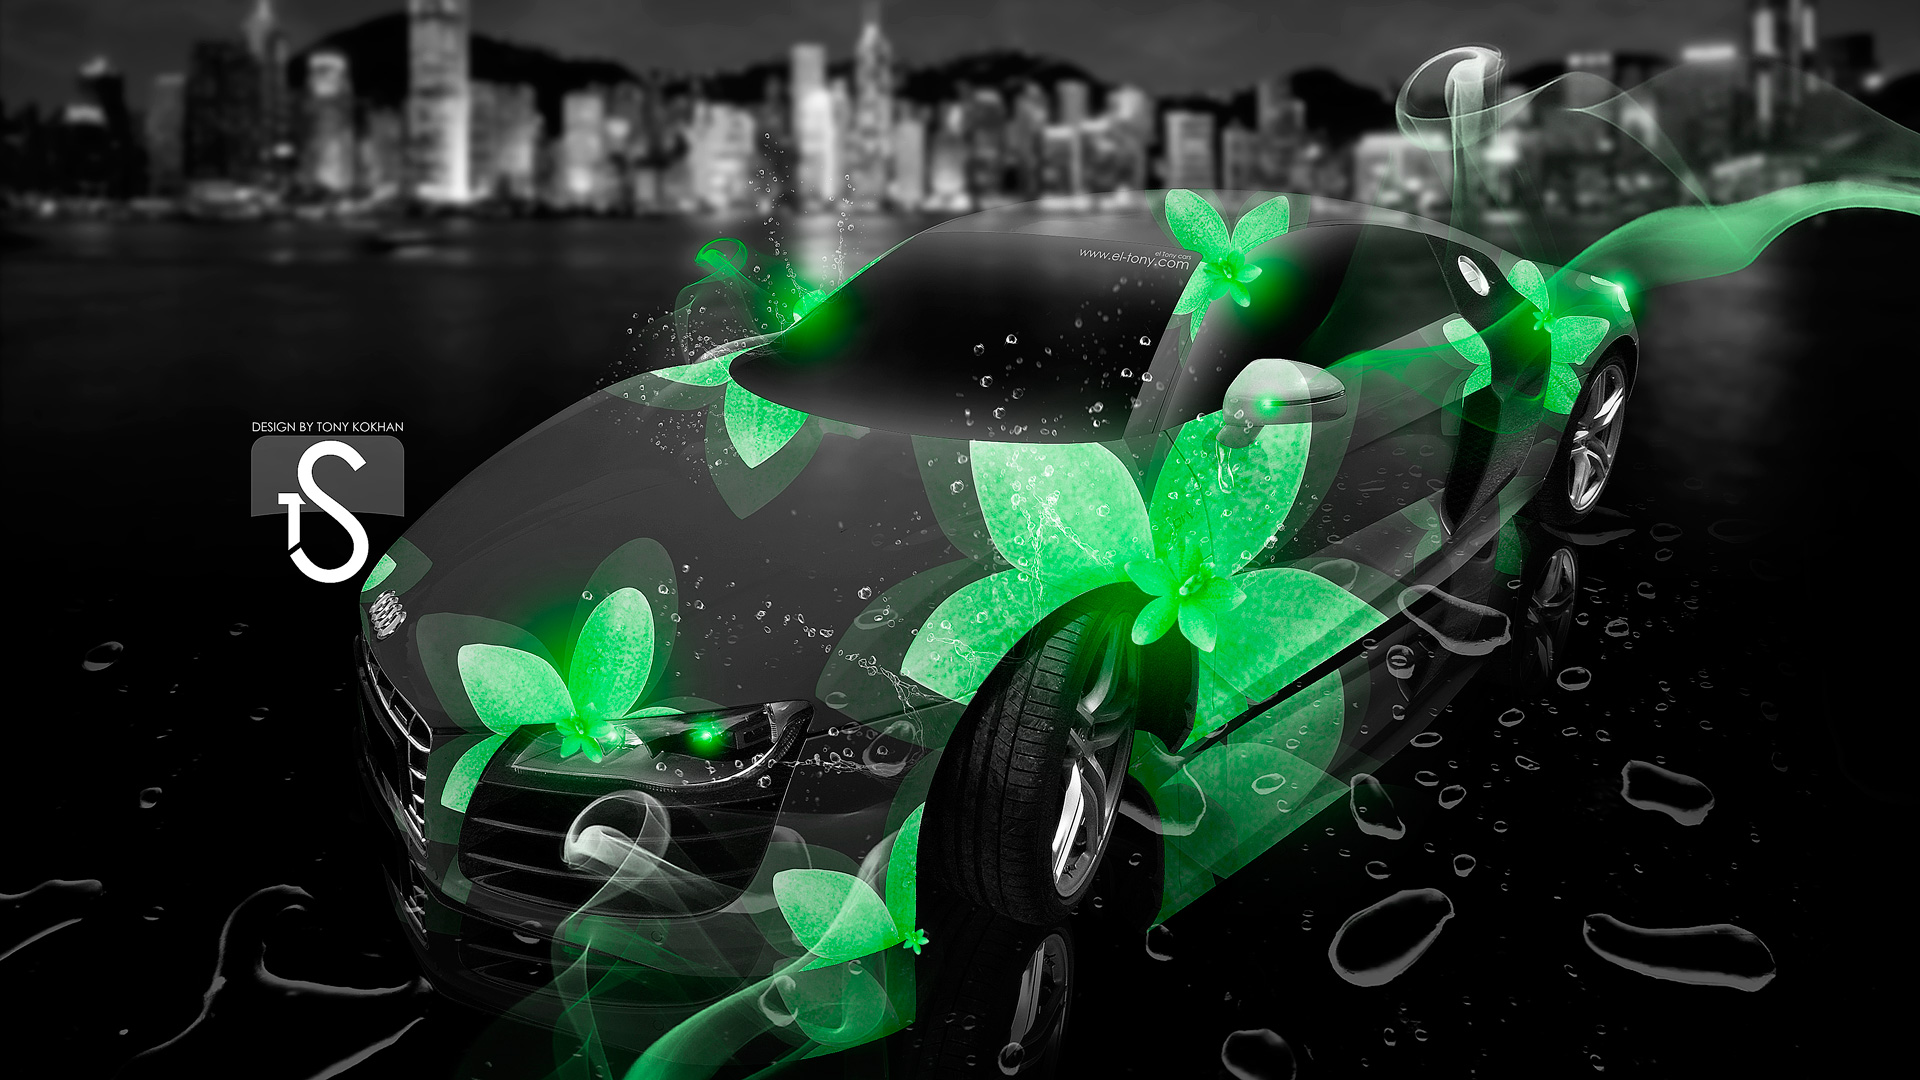 Nissan 370Z Crystal City Car 2013 · Audi R8 Neon Flowers Fantasy City 2013